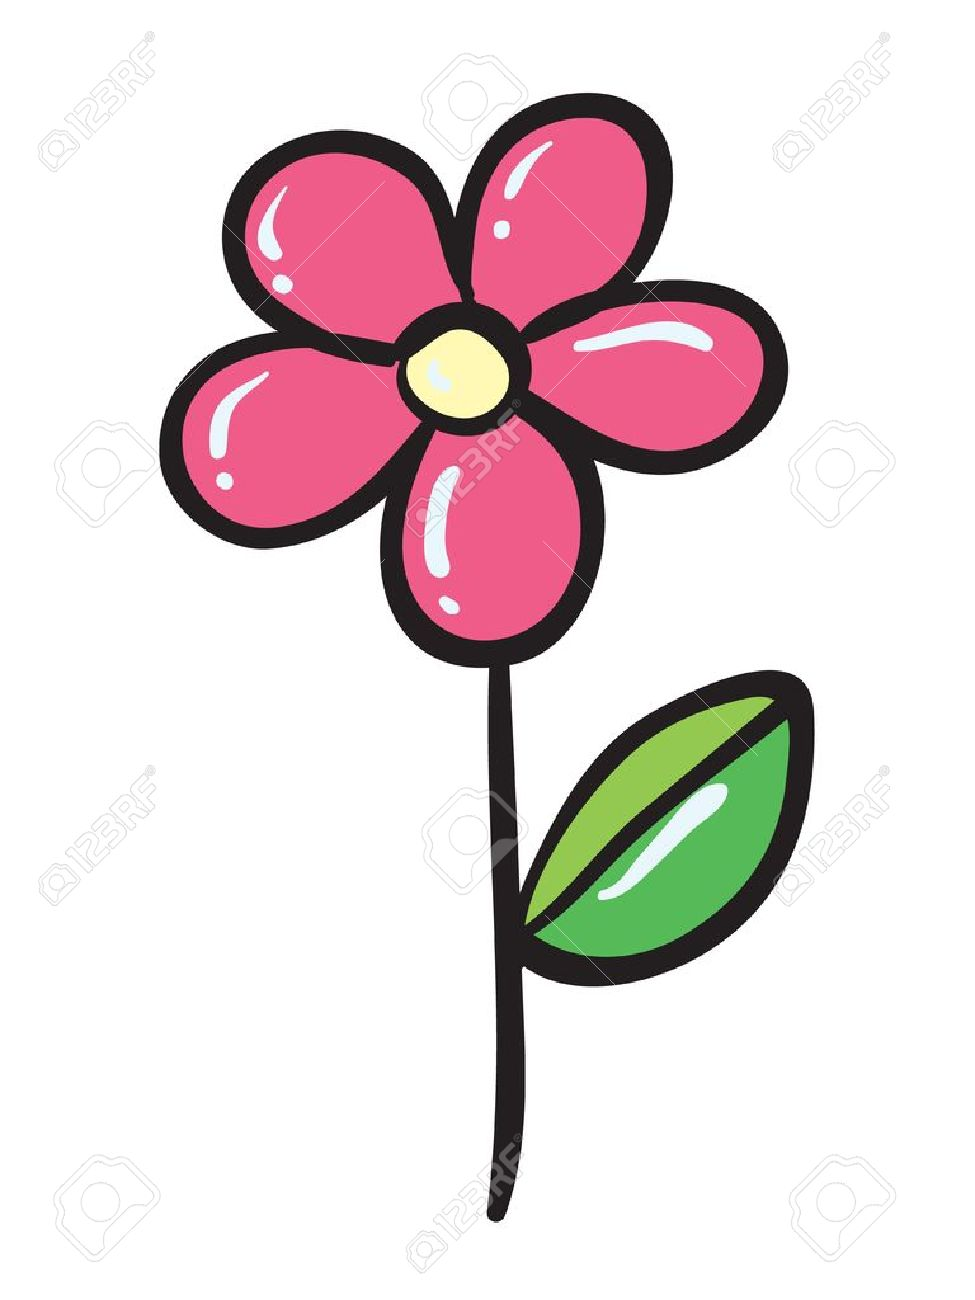 single flower stock photos & pictures. royalty free single flower